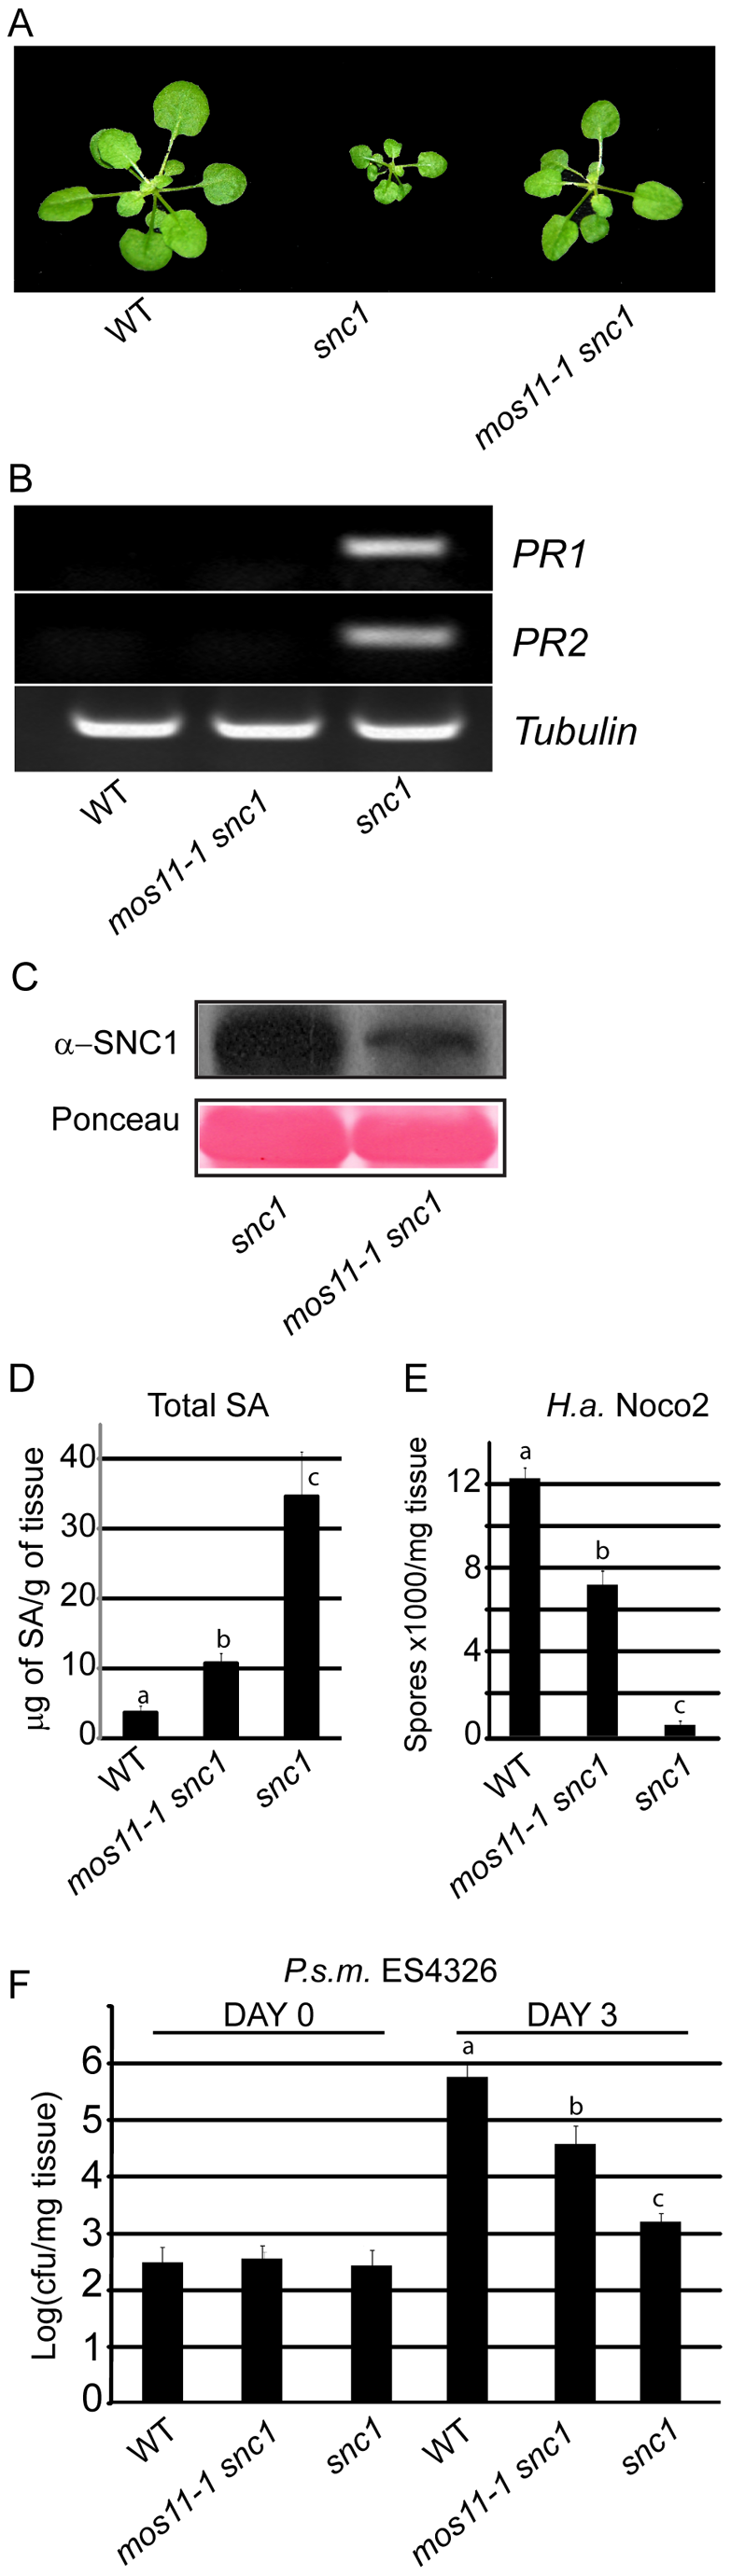 Suppression of <i>snc1</i>-associated dwarfism and enhanced resistance phenotypes by <i>mos11-1</i>.